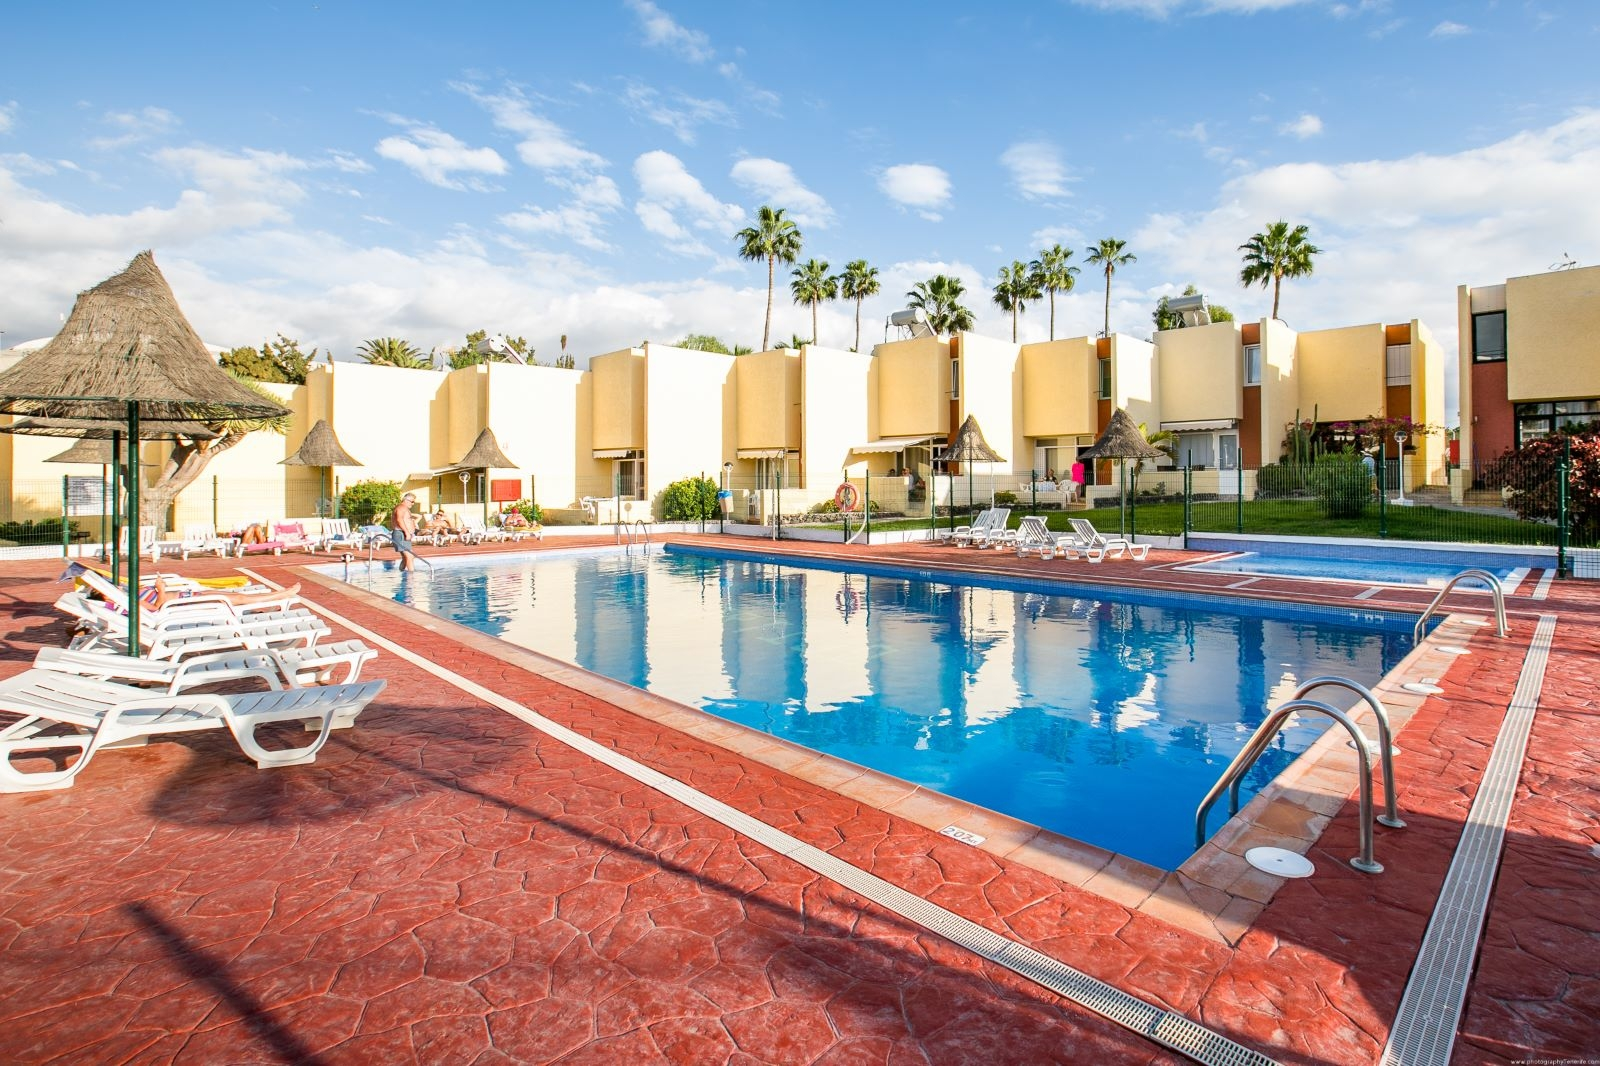 Properties for Sale in Tenerife, Canary Islands, Spain | SylkWayStar Real Estate. 1 bedroom apartment El Cortijo, Las Americas. Image-22487